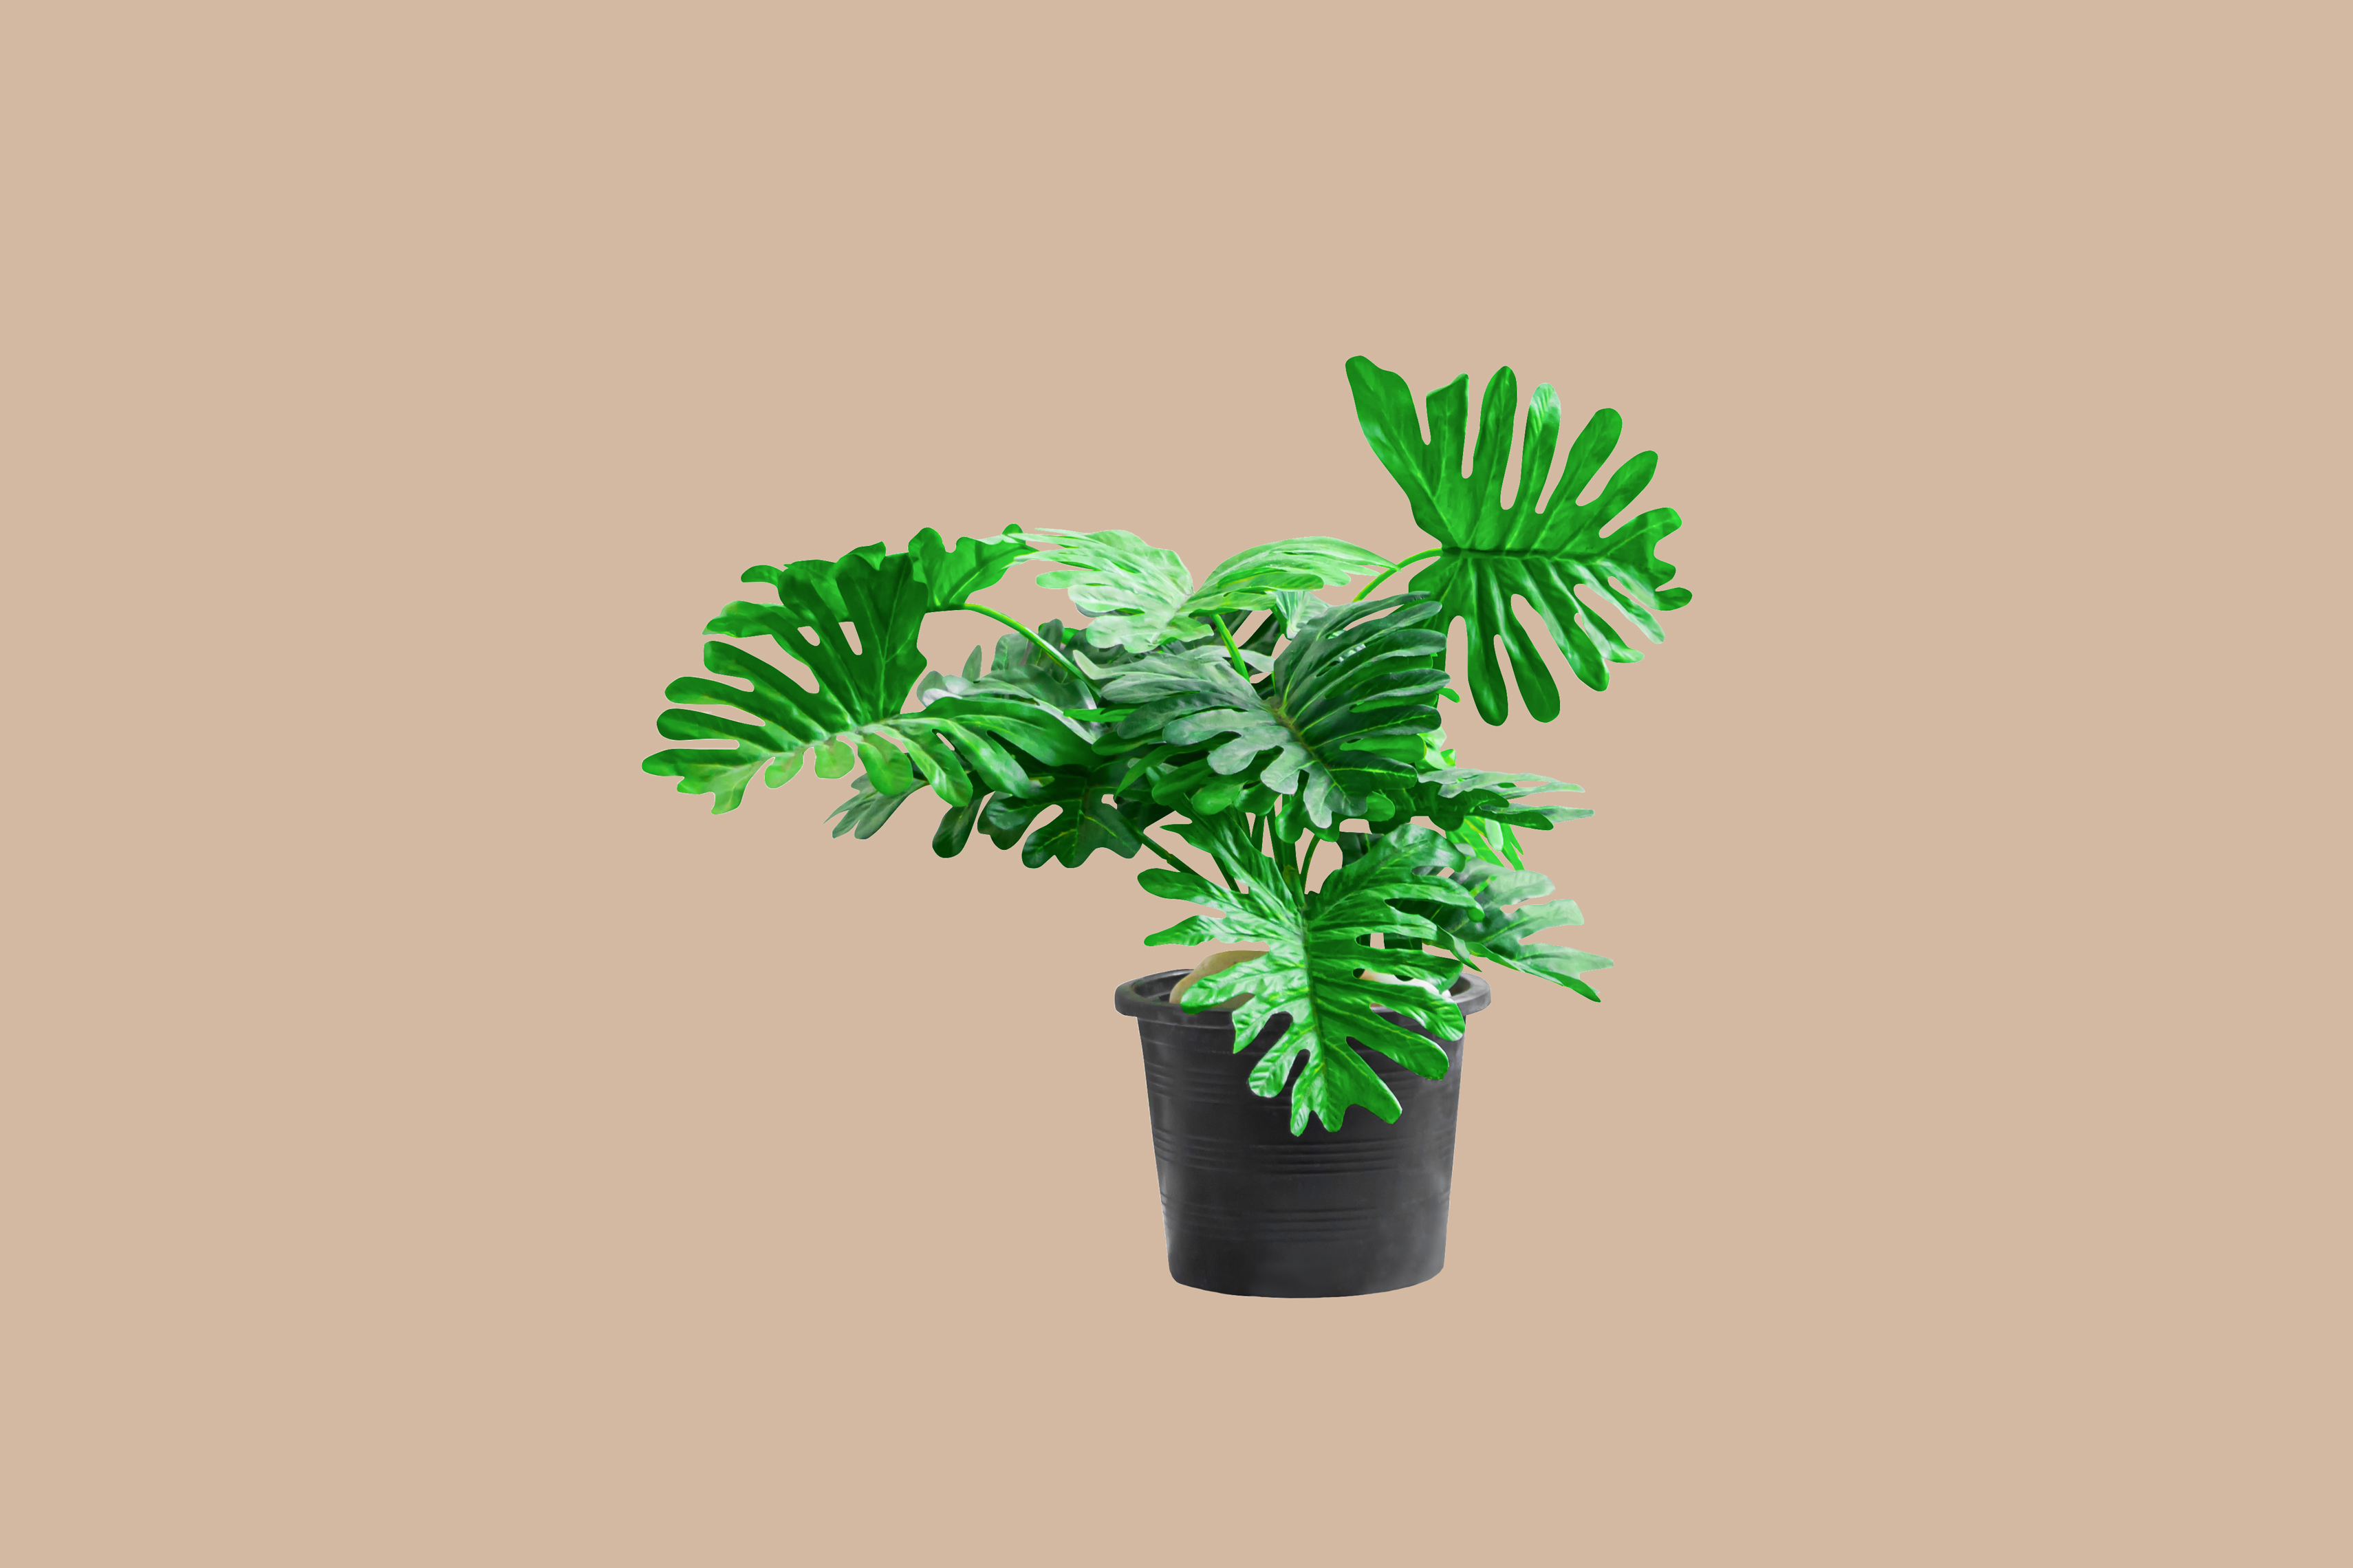 Tree philodendron in black pot